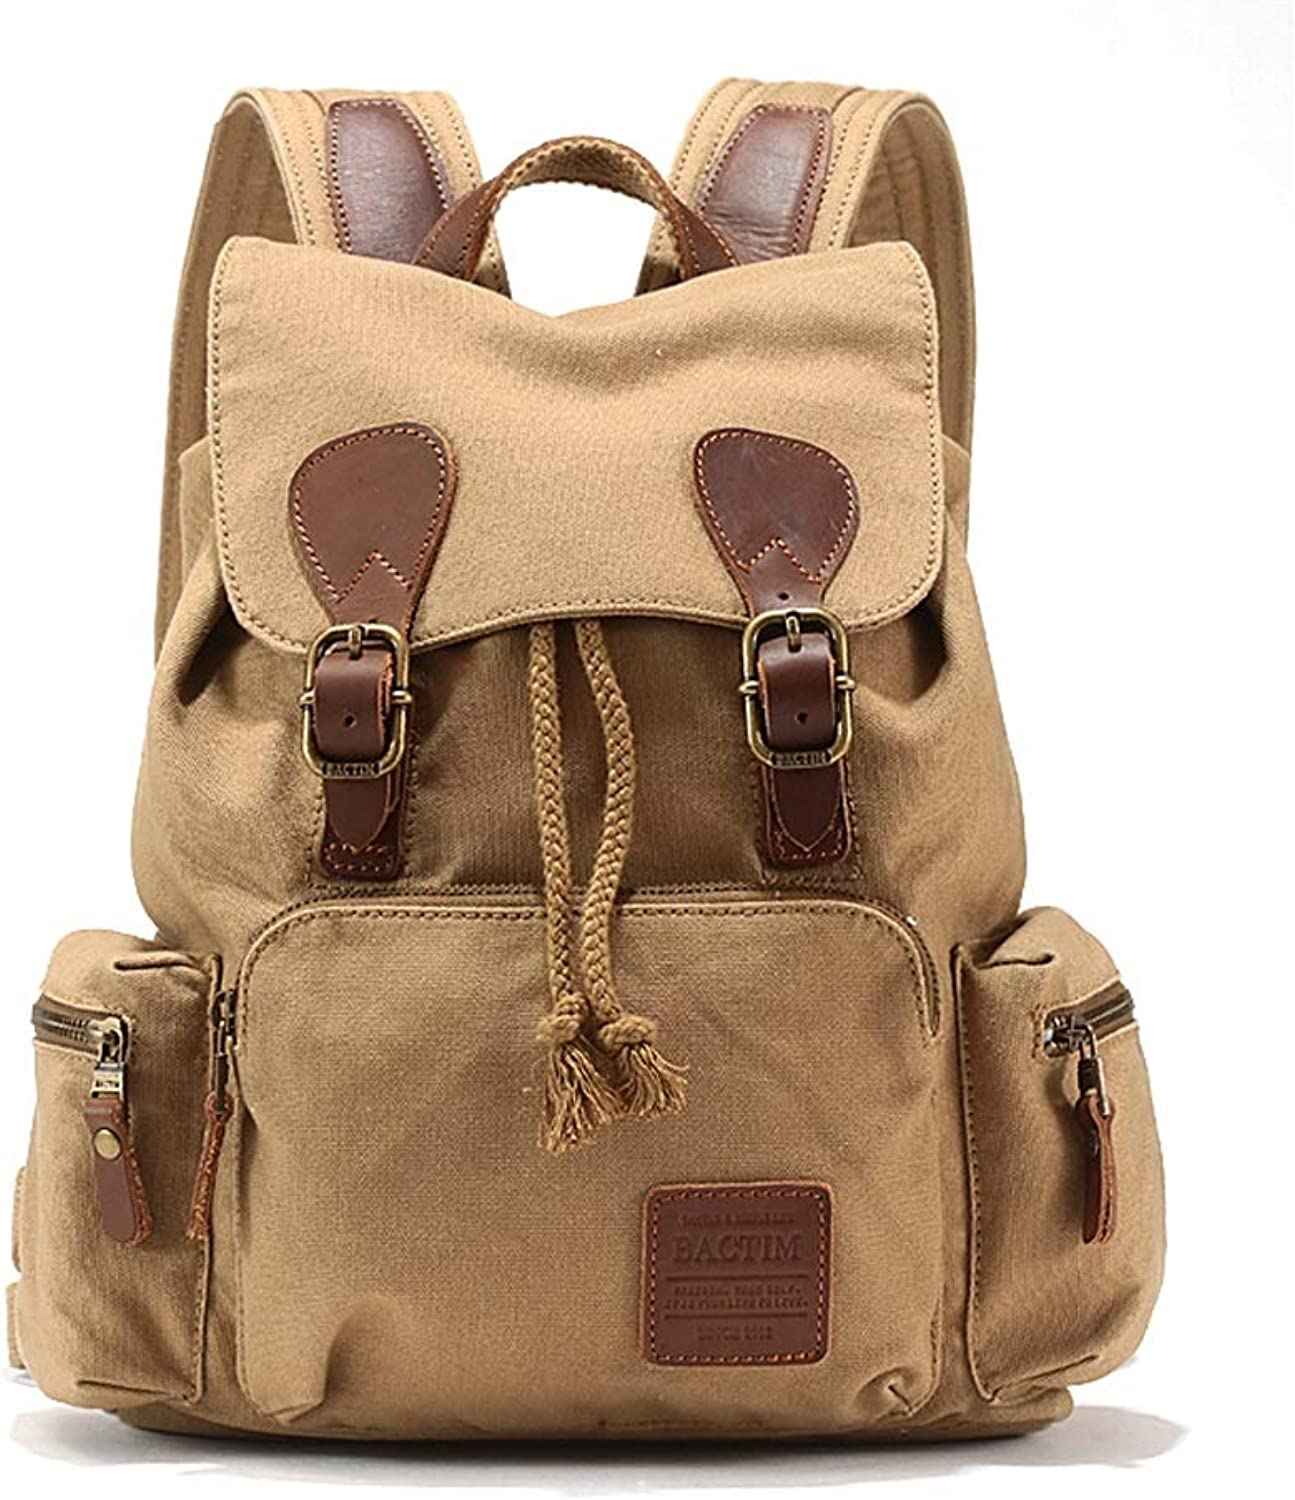 C&S CS Canvas Outdoor Sports Tour Rucksack Tasche Multi Compartment Computer Tasche Student Tasche